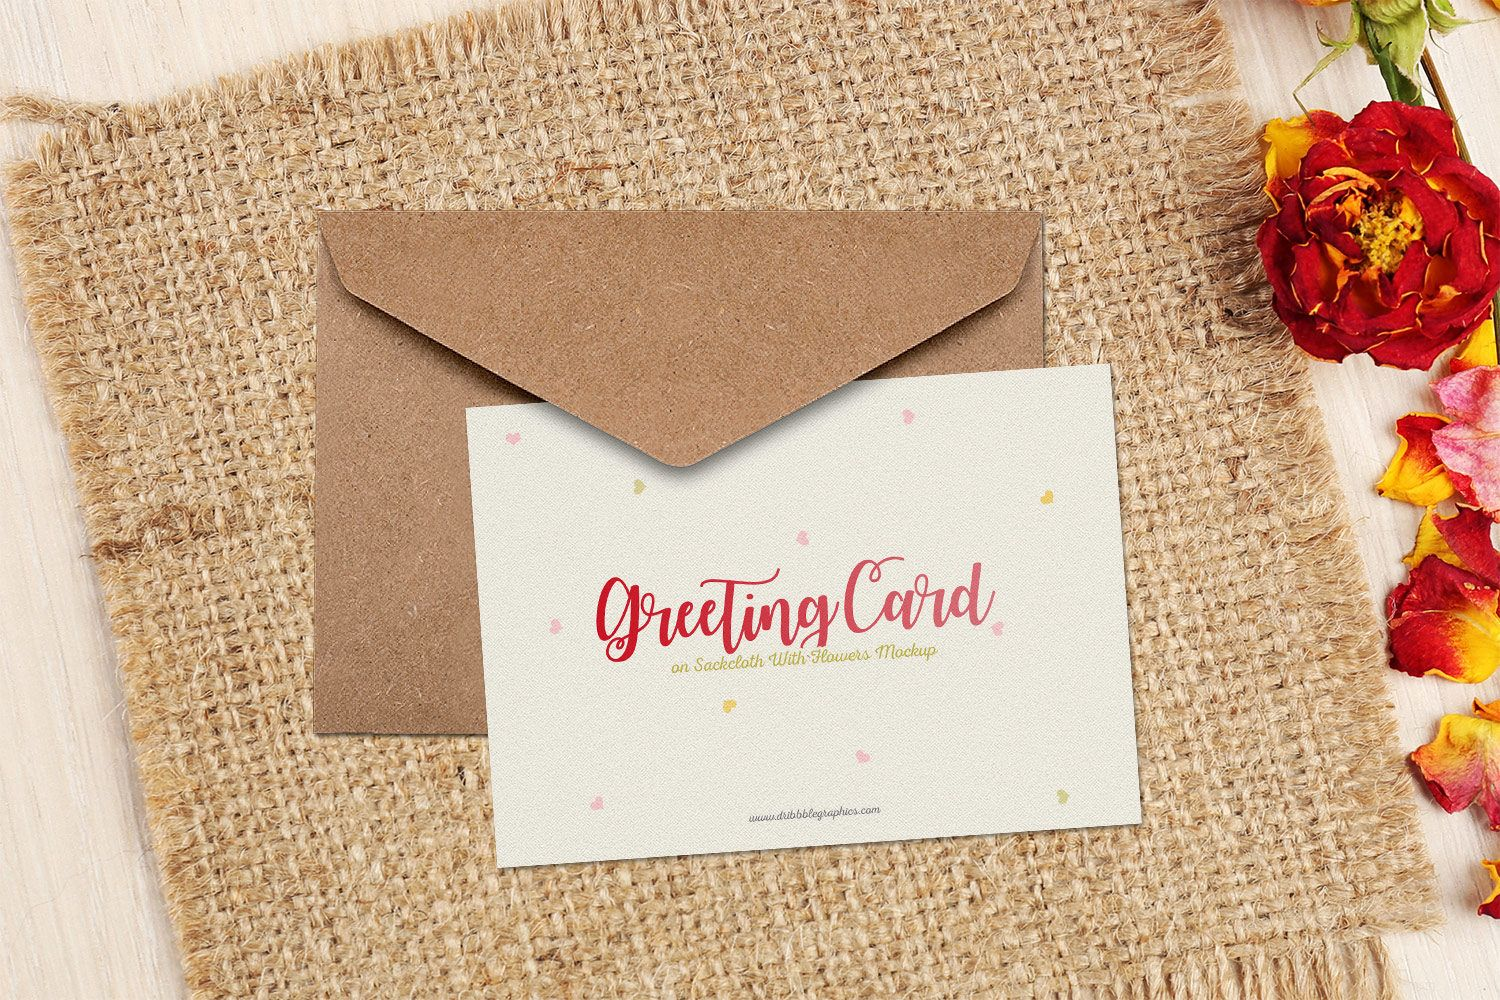 Showcase your greeting card design in a photorealistic look with showcase your greeting card design in a photorealistic look with this free mockup psd file kristyandbryce Choice Image